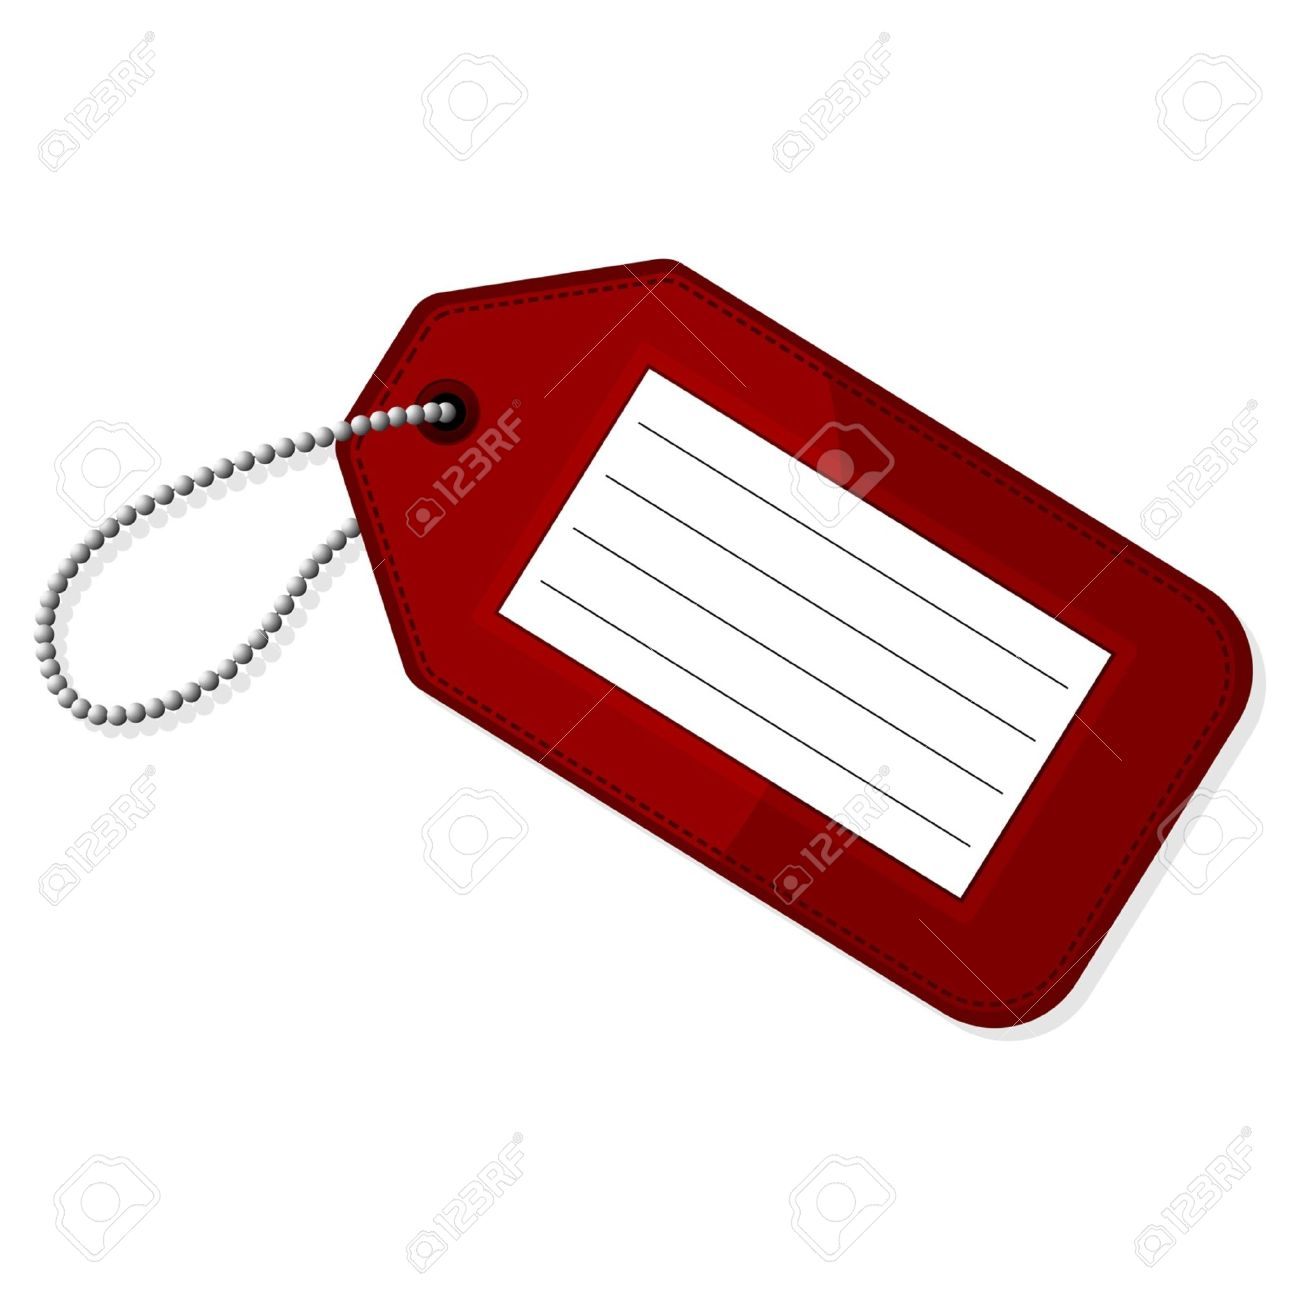 Luggage tag clipart 6 » Clipart Station.